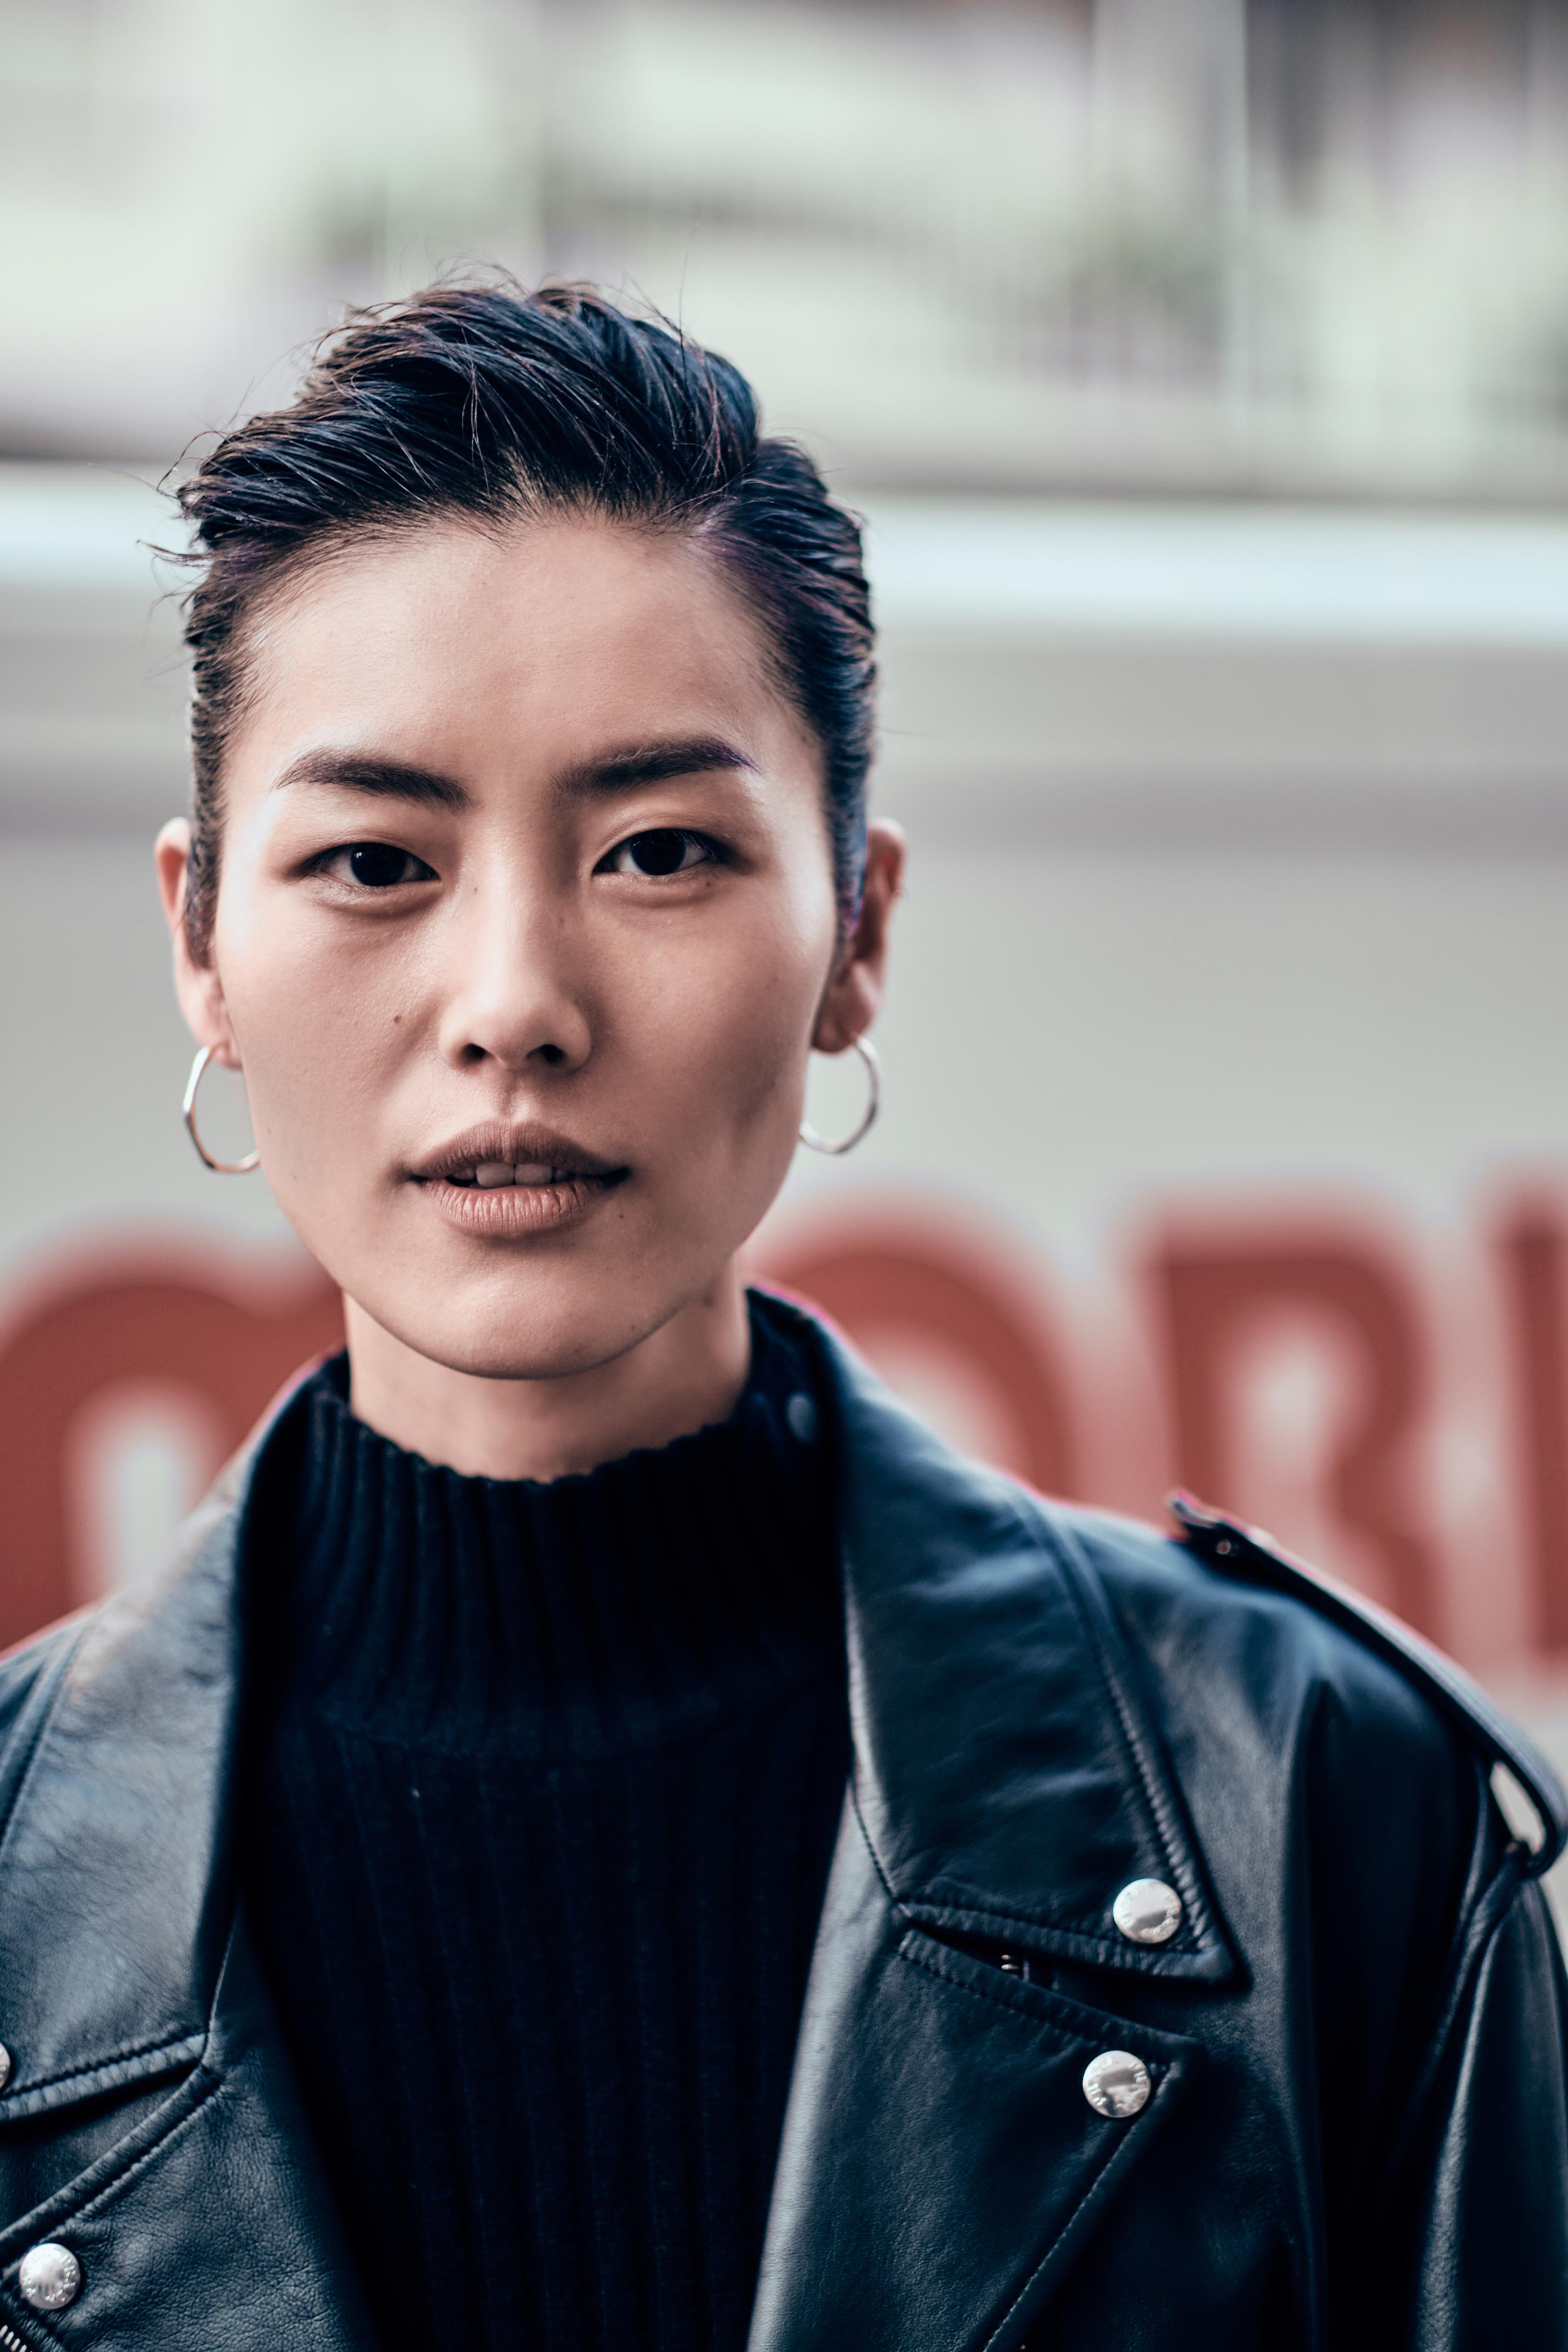 The 33-year old daughter of father (?) and mother(?) Liu Wen in 2021 photo. Liu Wen earned a  million dollar salary - leaving the net worth at 1.7 million in 2021